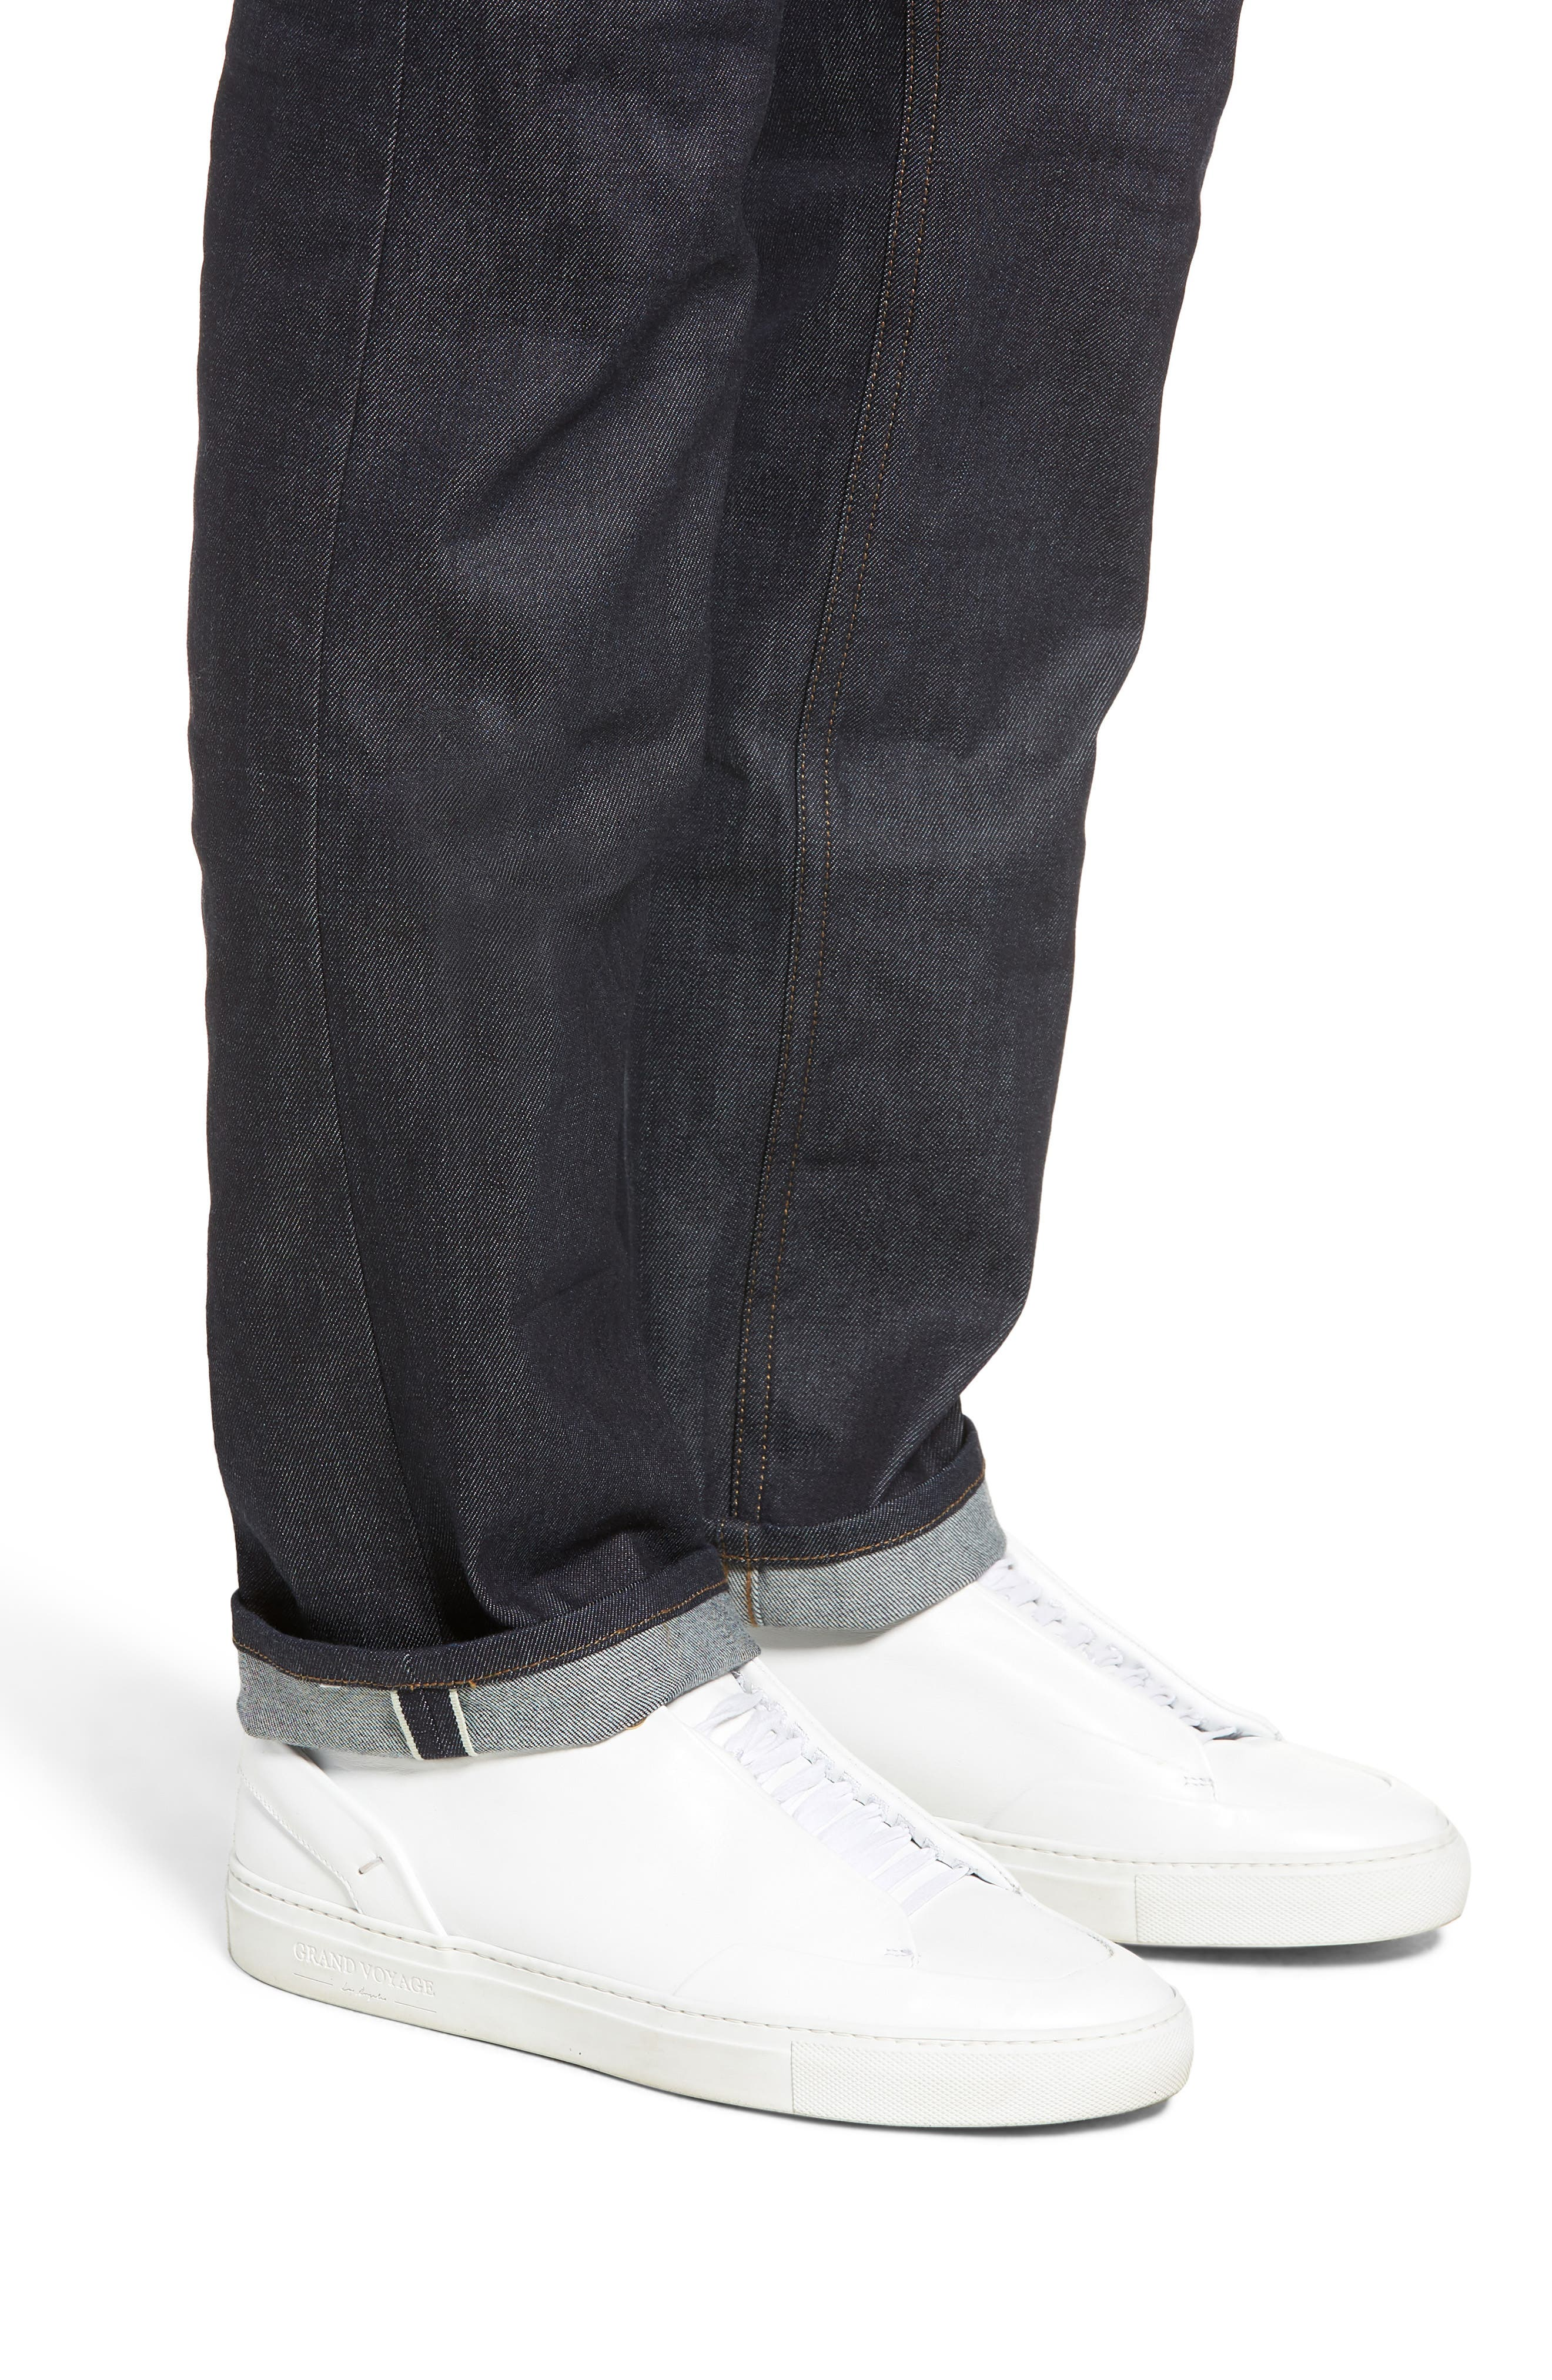 Greensboro Straight Leg Jeans,                             Alternate thumbnail 4, color,                             472